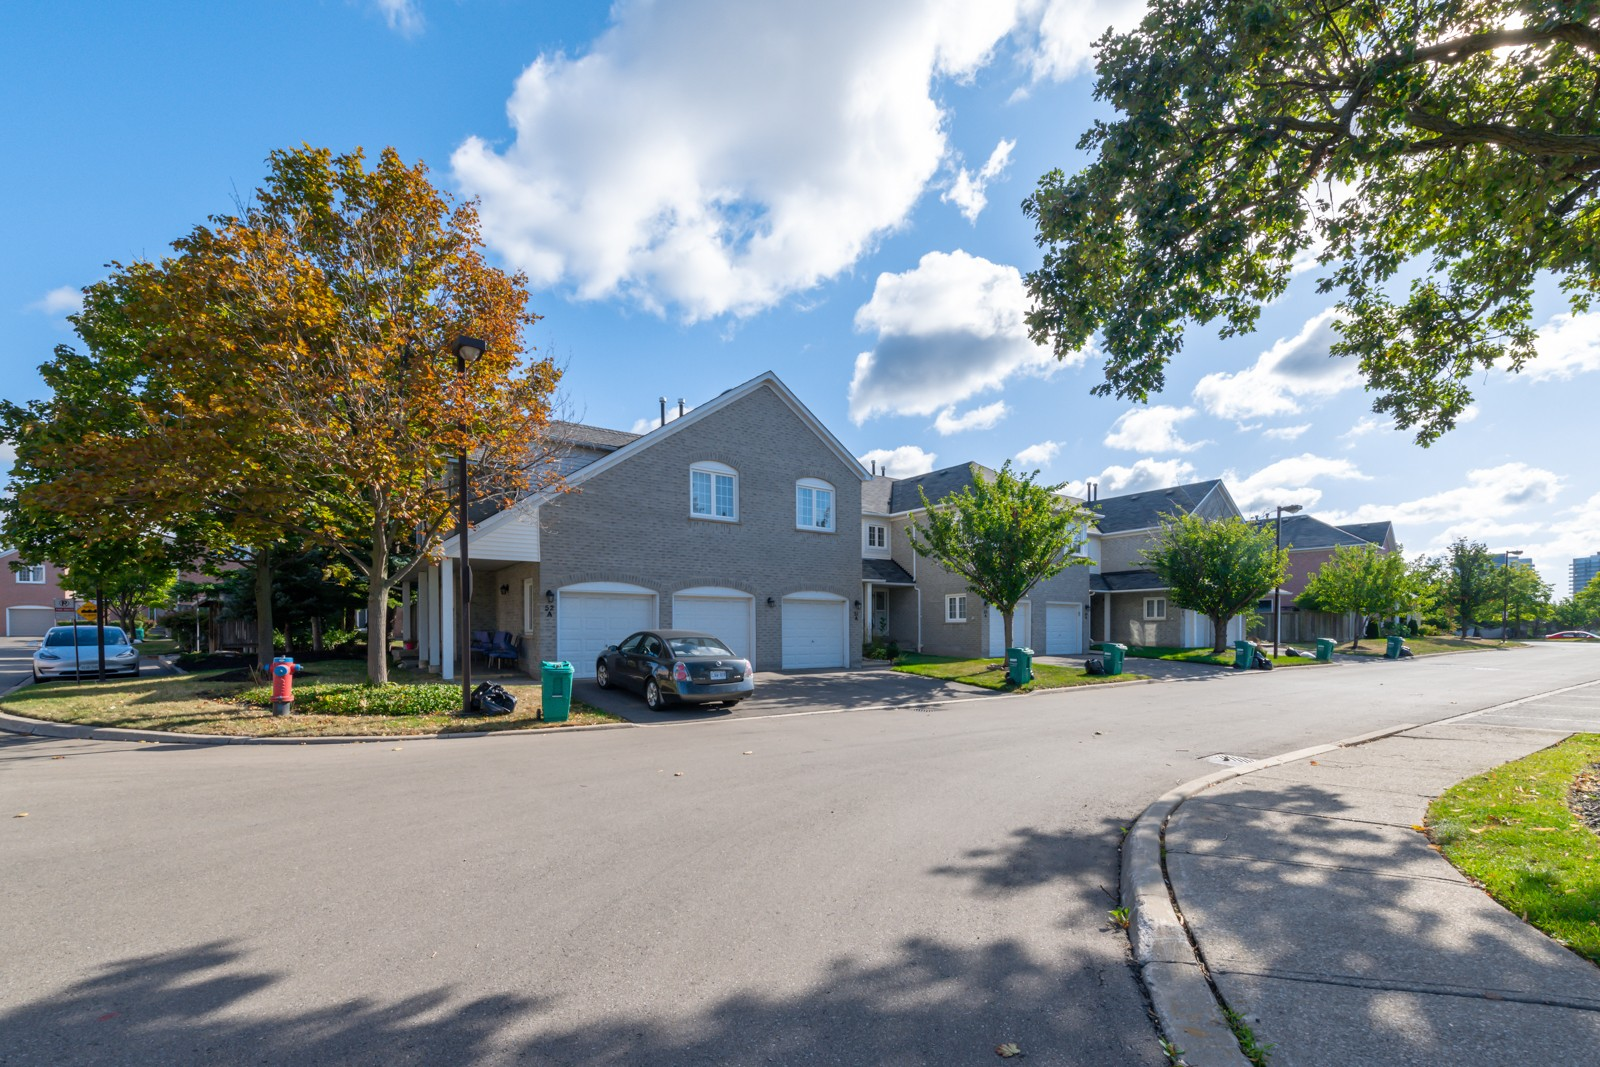 5205 Glen Erin Drive Townhouses at 5205 Glen Erin Dr, Mississauga 1